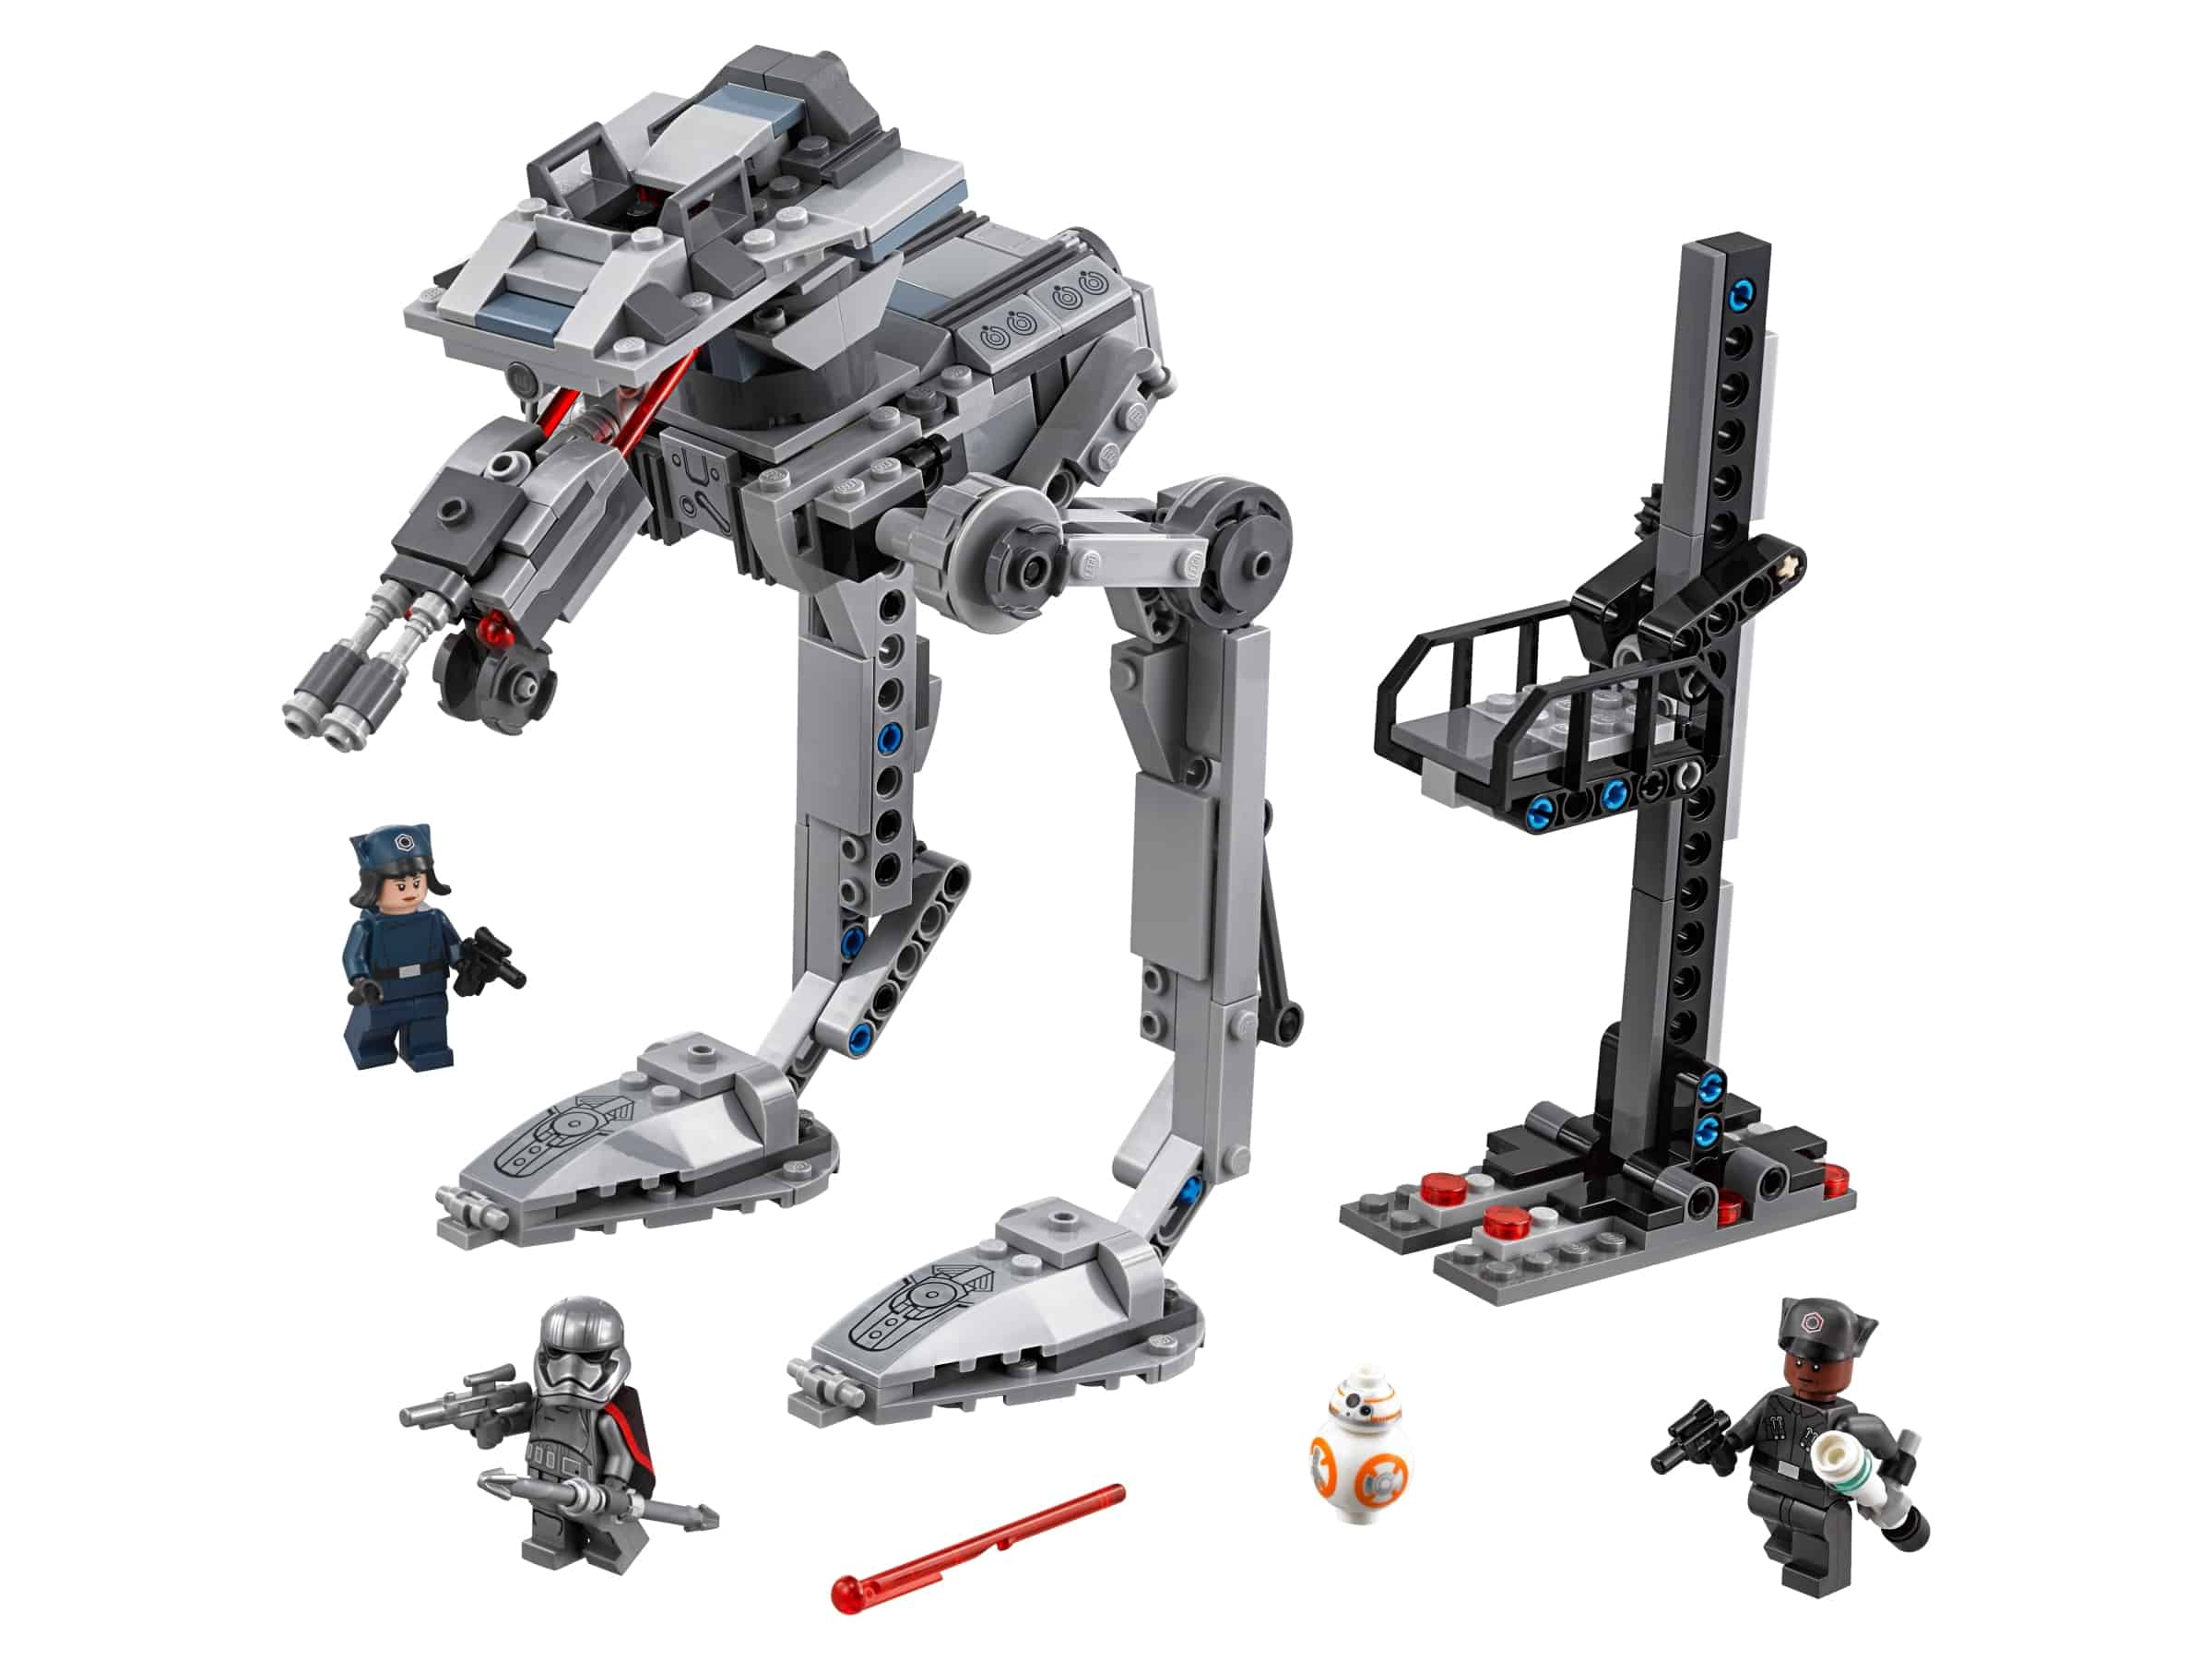 lego first order at st 75201